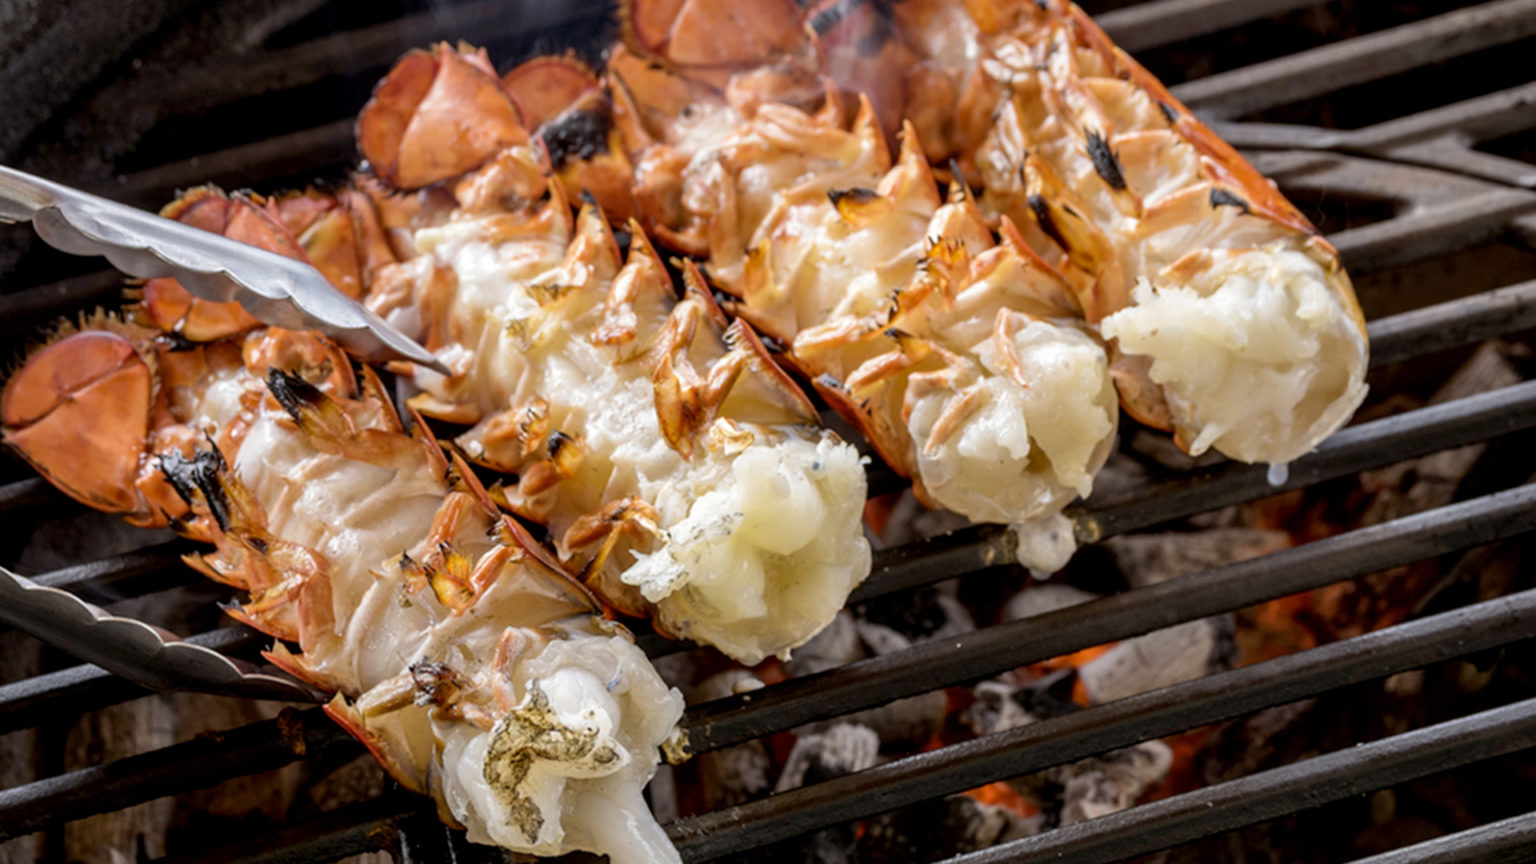 Lobster tails cooking over charcoal on barbecue grill;and; barbecue; barbecueing; celebration; charcoal; close; color; delicacy; drink; elevated; food; grate; grill; image; lobster; no; outdoor; party; people; photography; preparation; preparing; seafood; tail; texas; tongs; up; usa; view